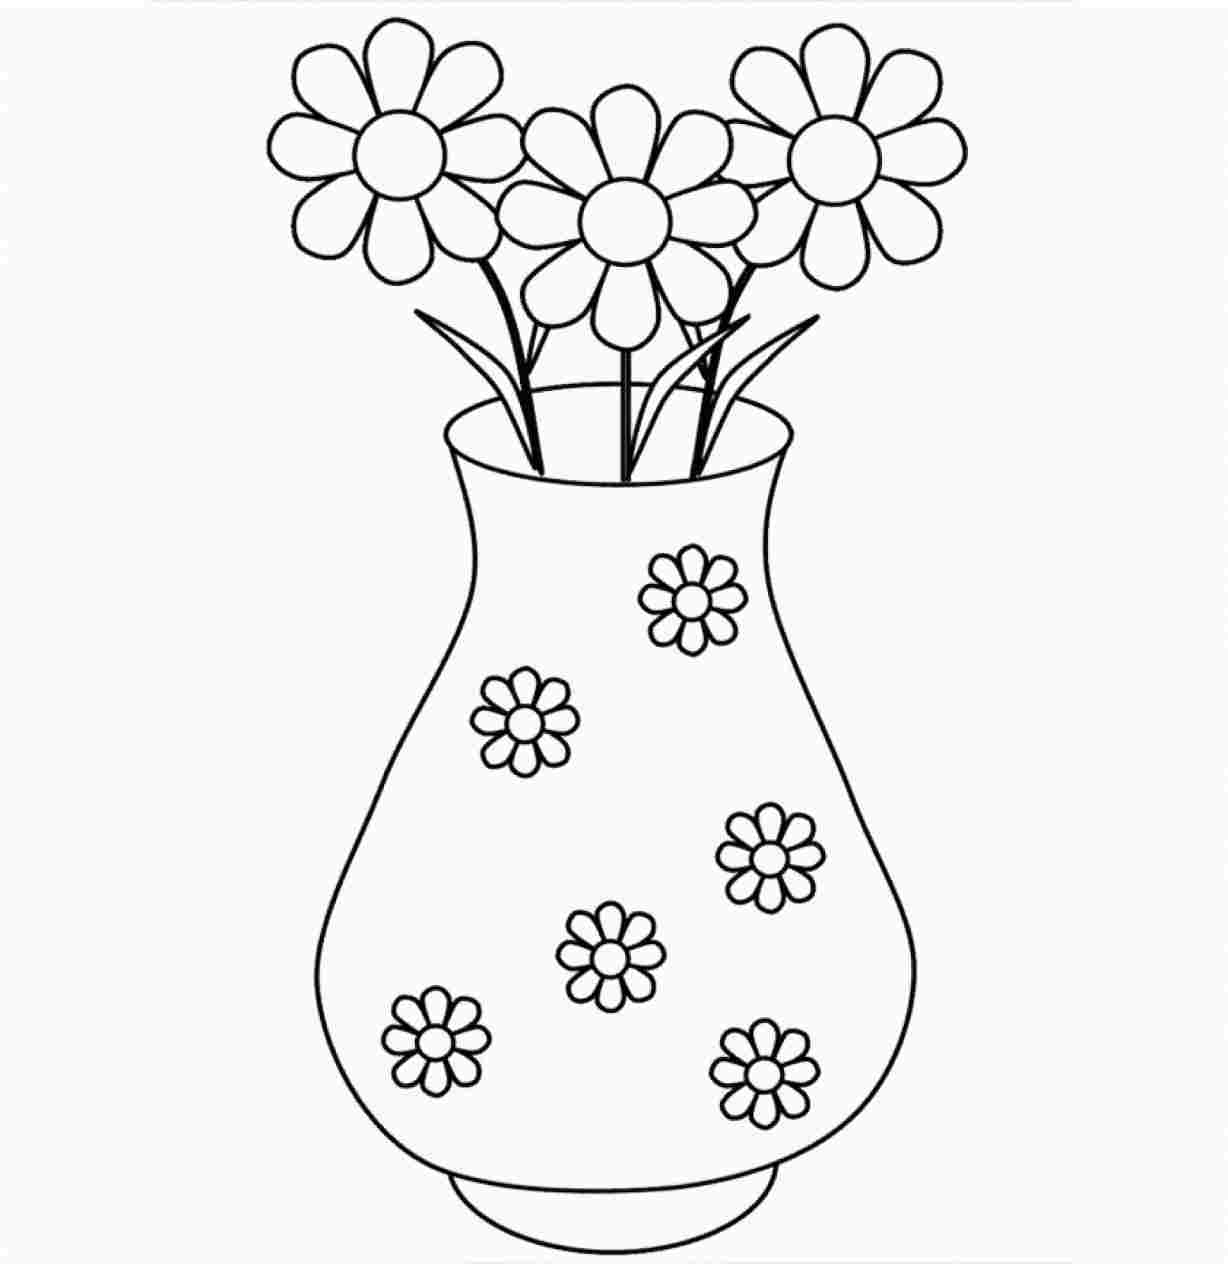 Clipart black and white flowers in a vase clipart library library With Design flower vase clipart black and white decoration ... clipart library library